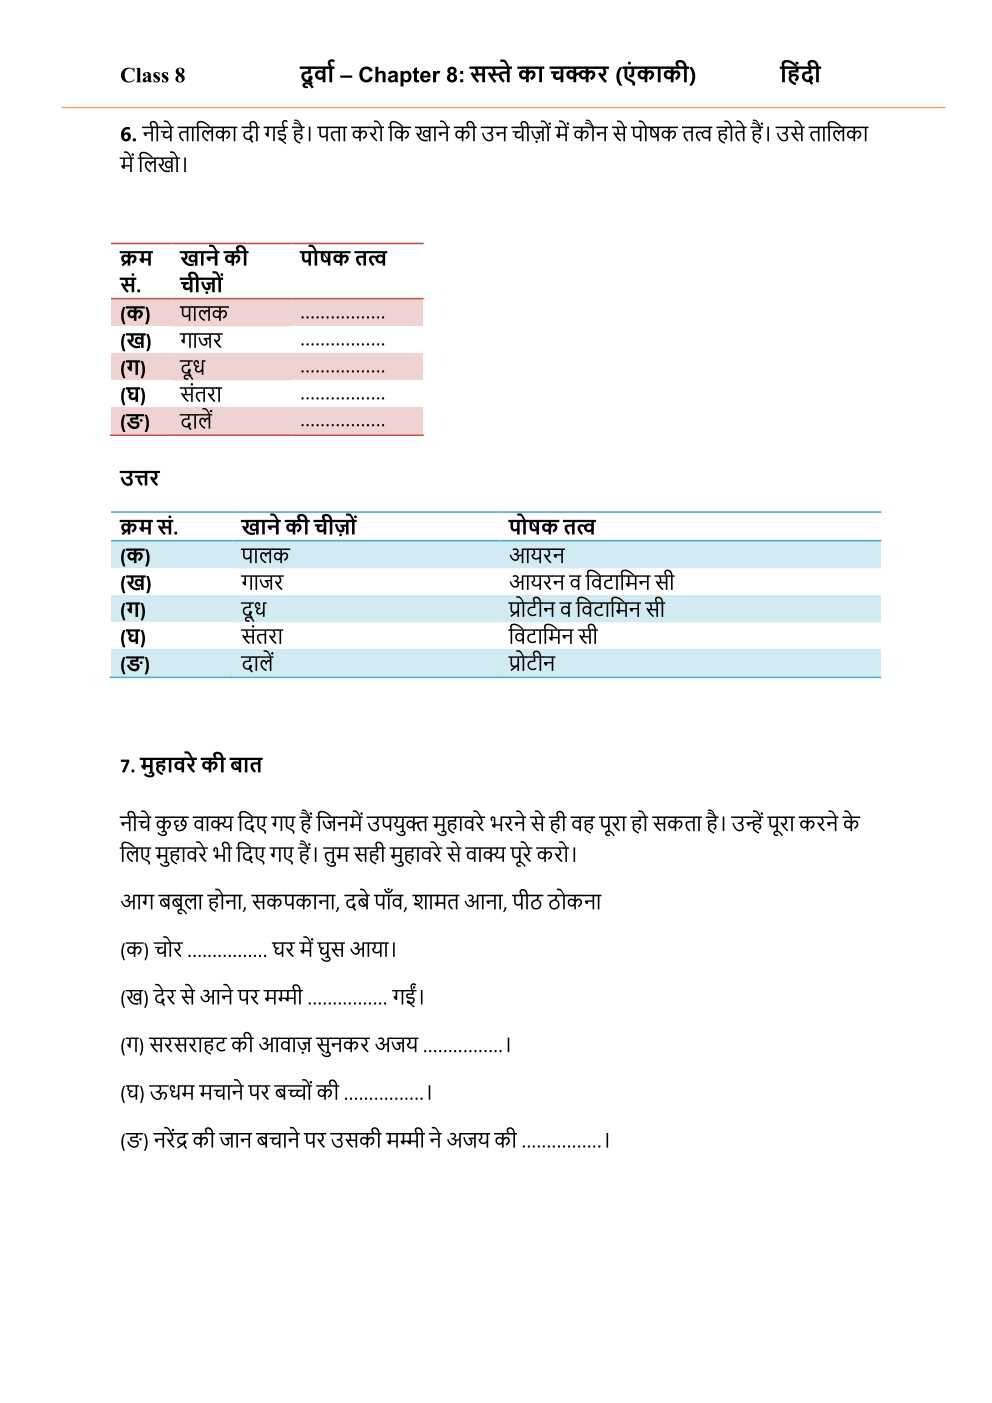 NCERT Solutions For Class 8 Hindi Durva Chapter 8